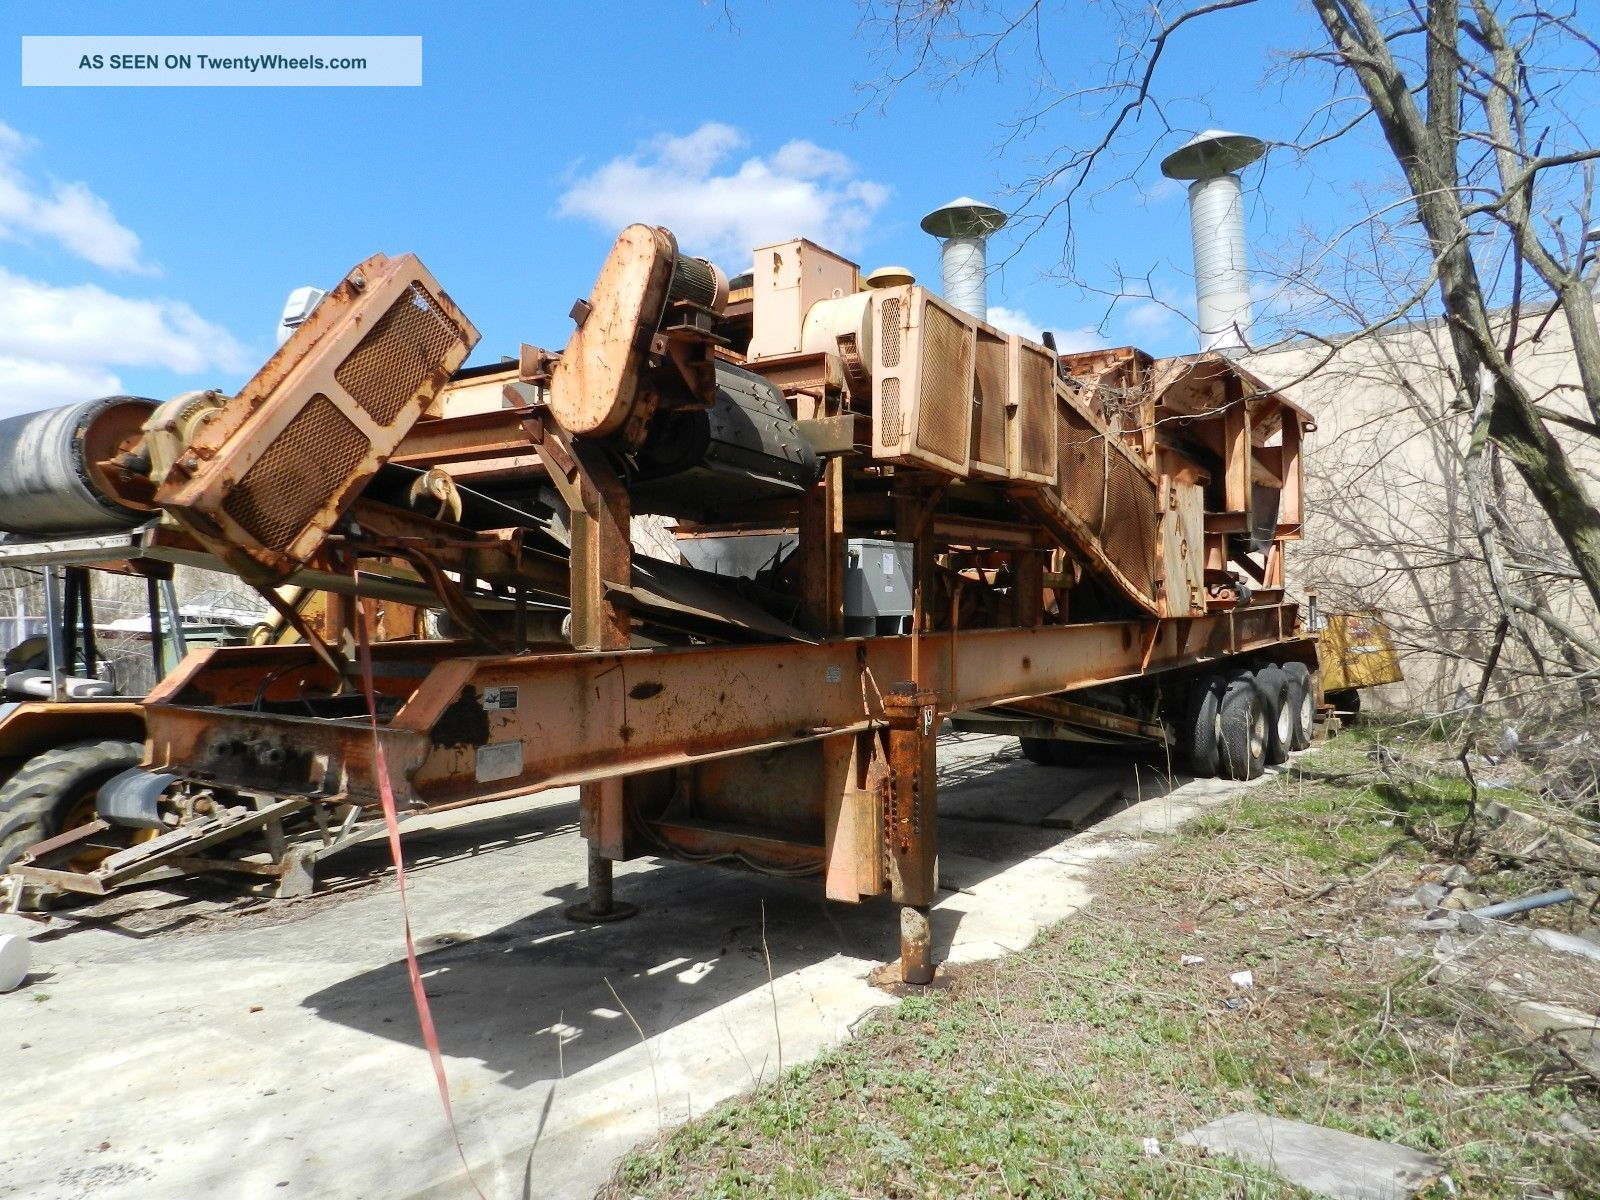 Eagle Impact Concrete/rock Crusher Ultramax 500 S/n 11048 Other photo